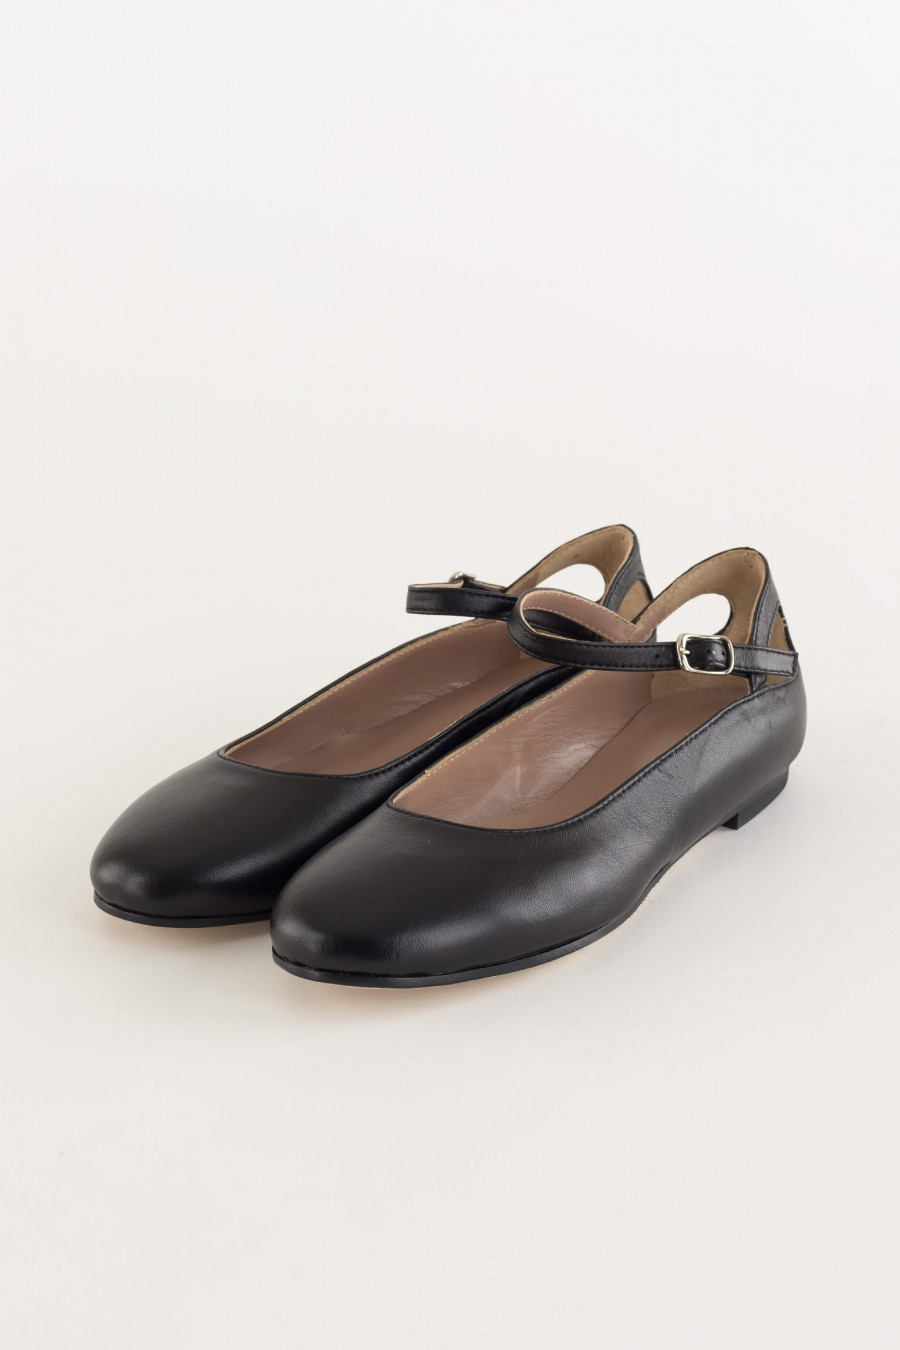 Flat shoes with straps